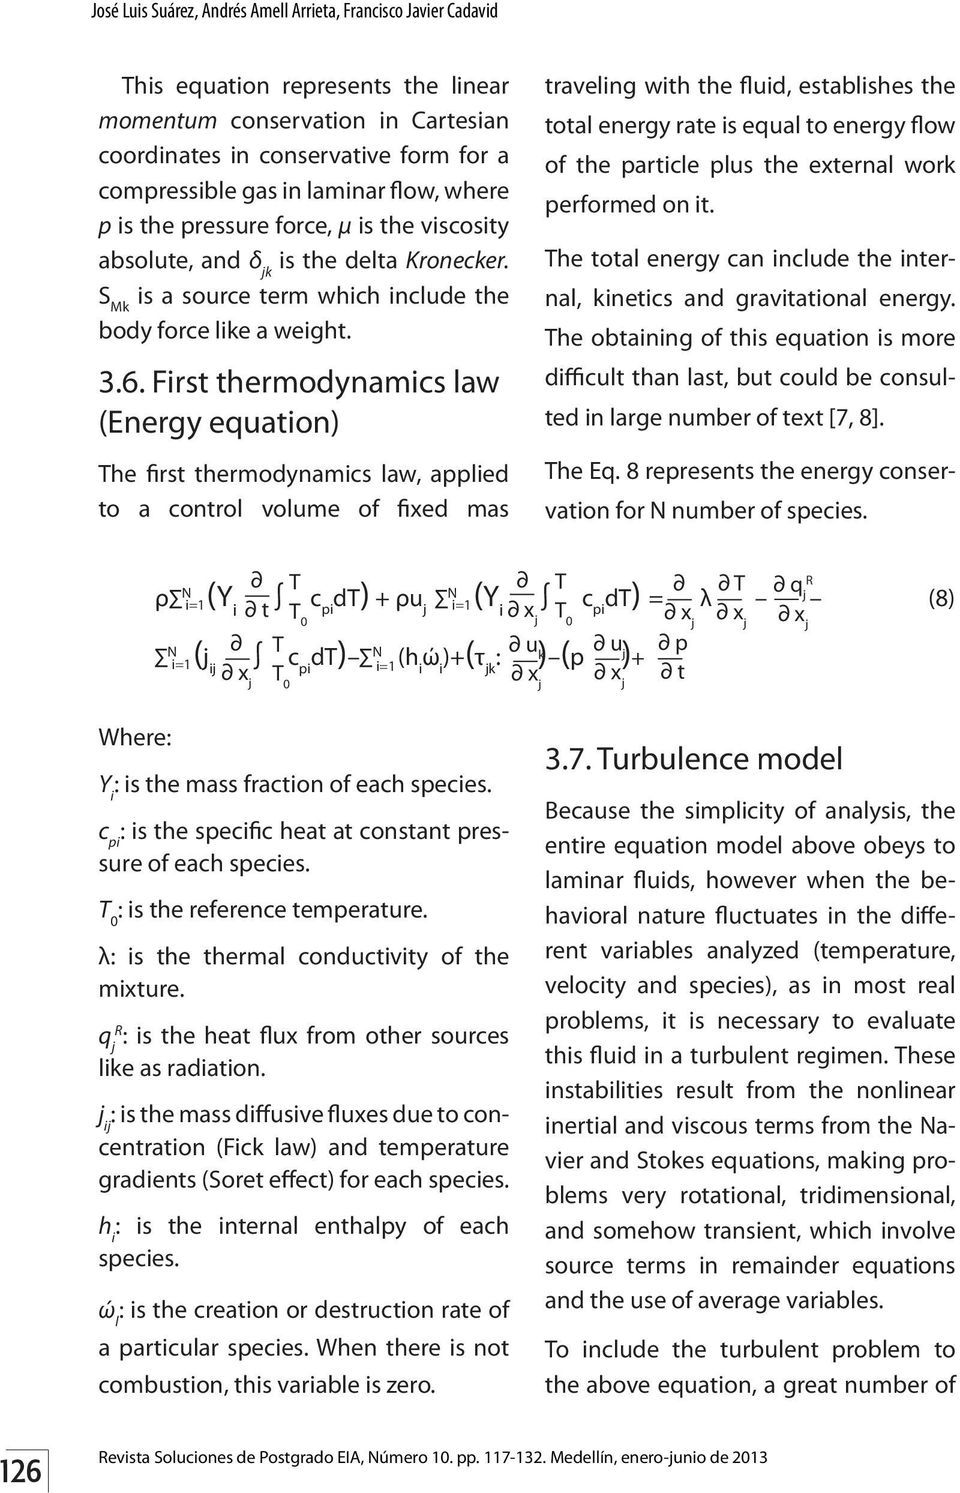 First thermodynamics law (Energy equation) The first thermodynamics law, applied to a control volume of fixed mas traveling with the fluid, establishes the total energy rate is equal to energy flow